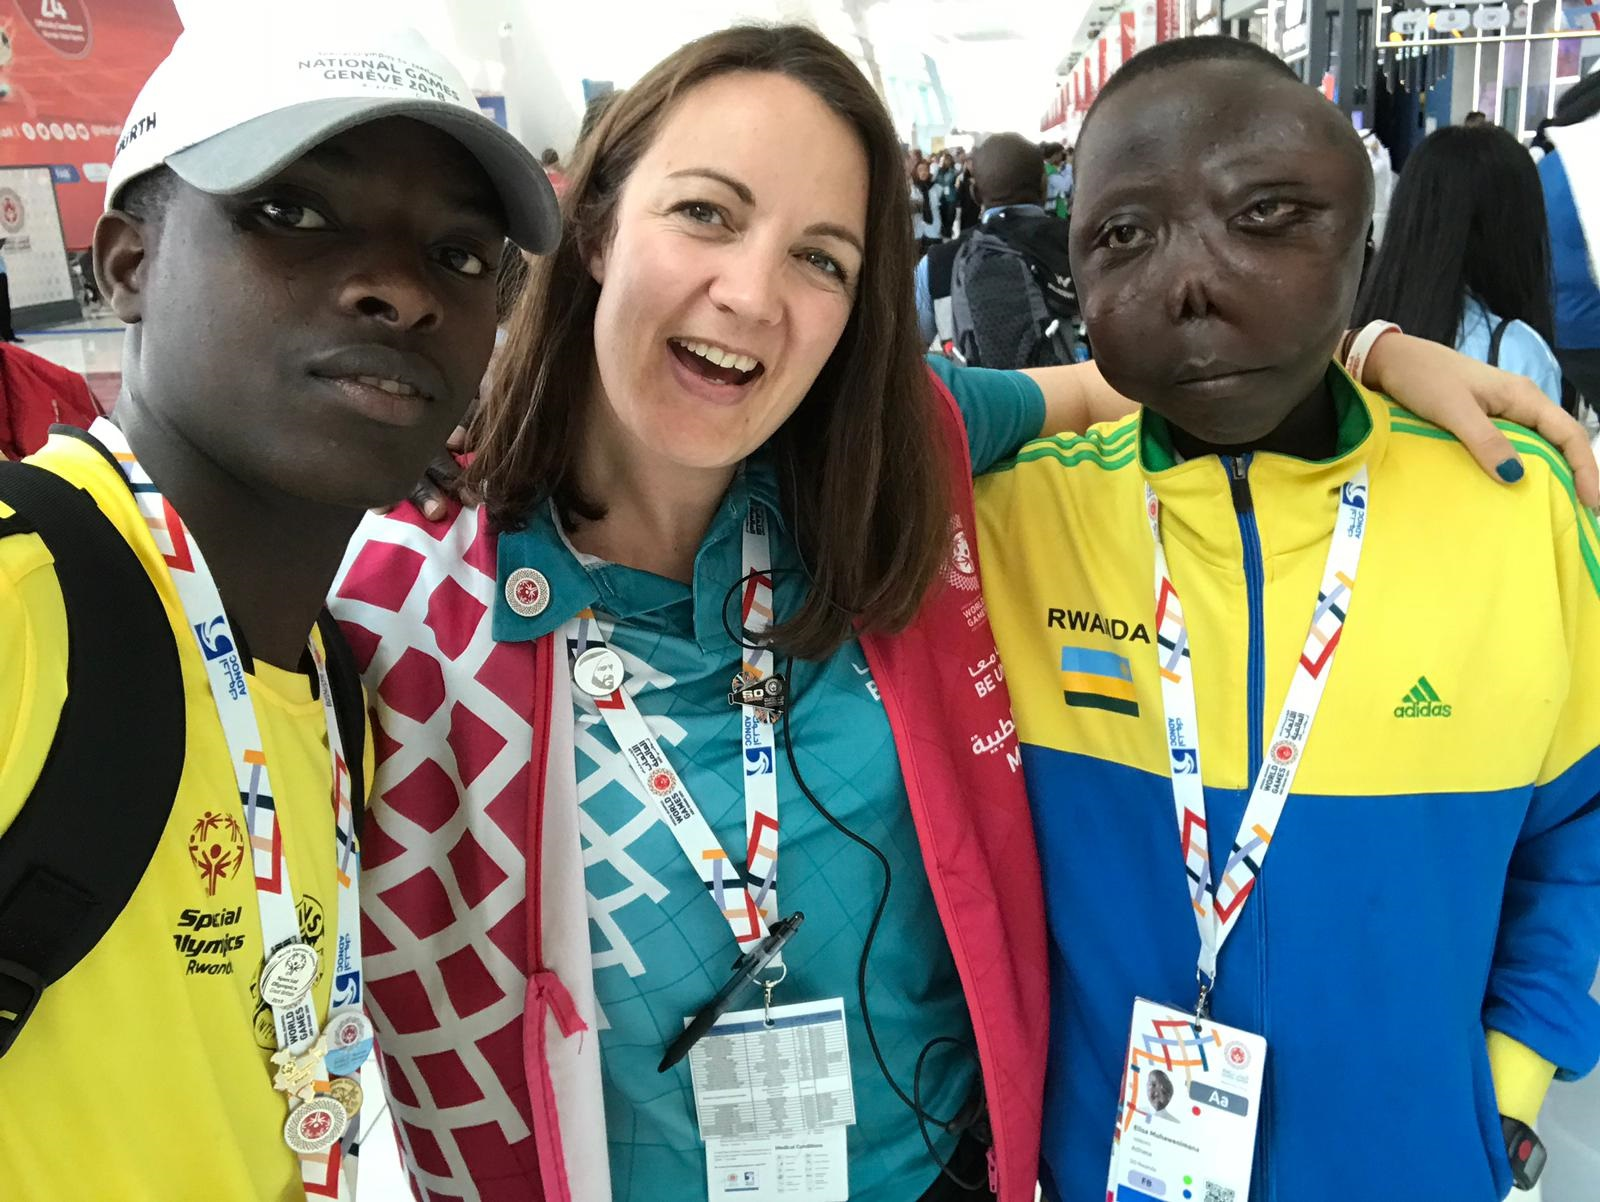 "A woman wearing a red vest poses for a photo with two male Rwandan soccer players. The player on the right has a deformed face and is wearing a sweatshirt with the text ""Rwanda"" on the left. The player on the left is wearing a baseball cap and a Special Olympics T-shirt."